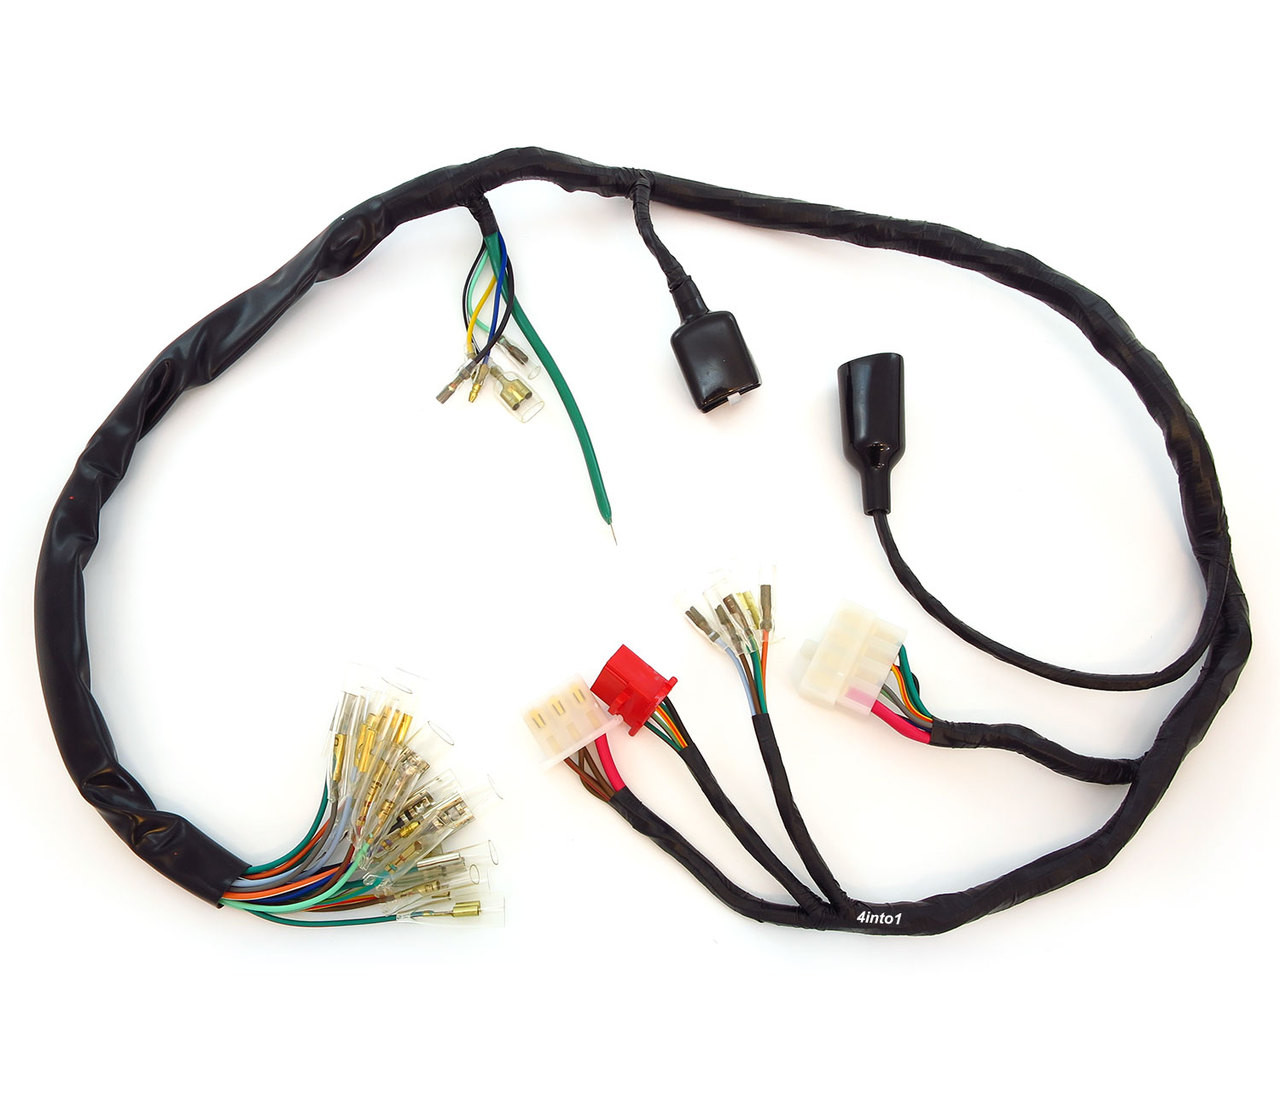 Honda Wiring Harness Simple Schema Civic Main 32100 374 000 Cb550k 1974 1975 2003